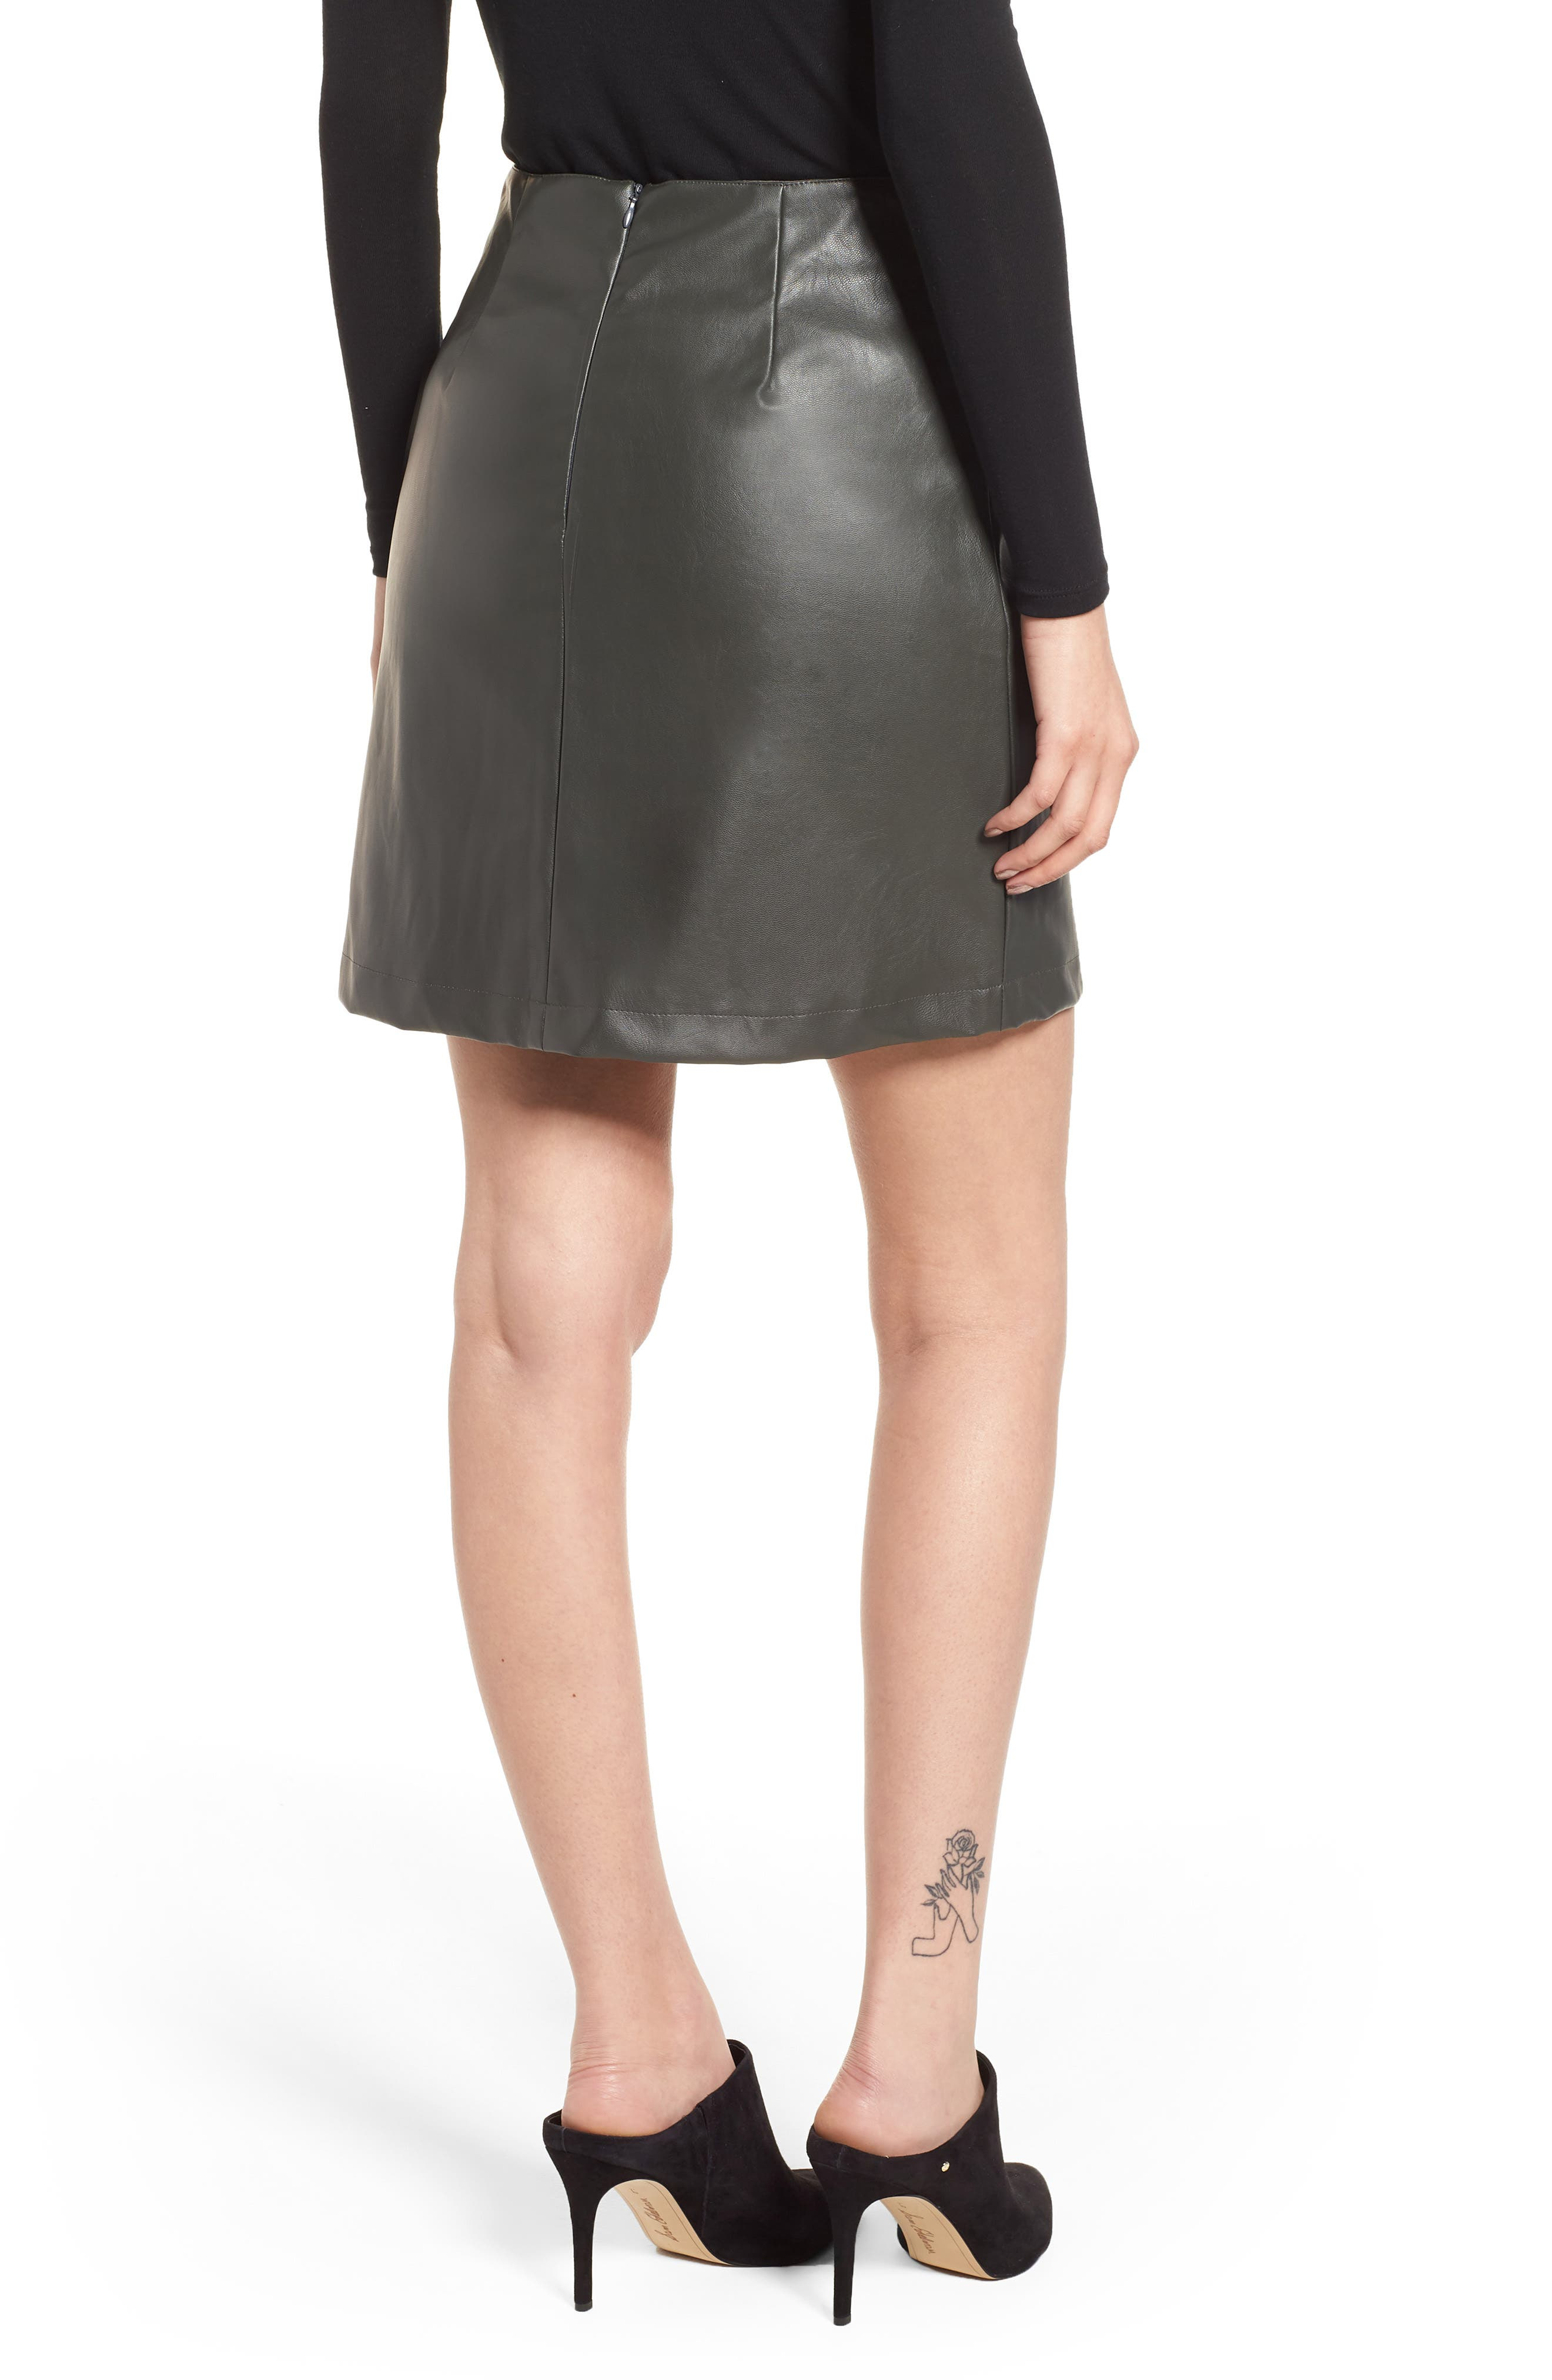 Bishop + Young A-Line Faux Leather Miniskirt,                             Alternate thumbnail 2, color,                             Olive